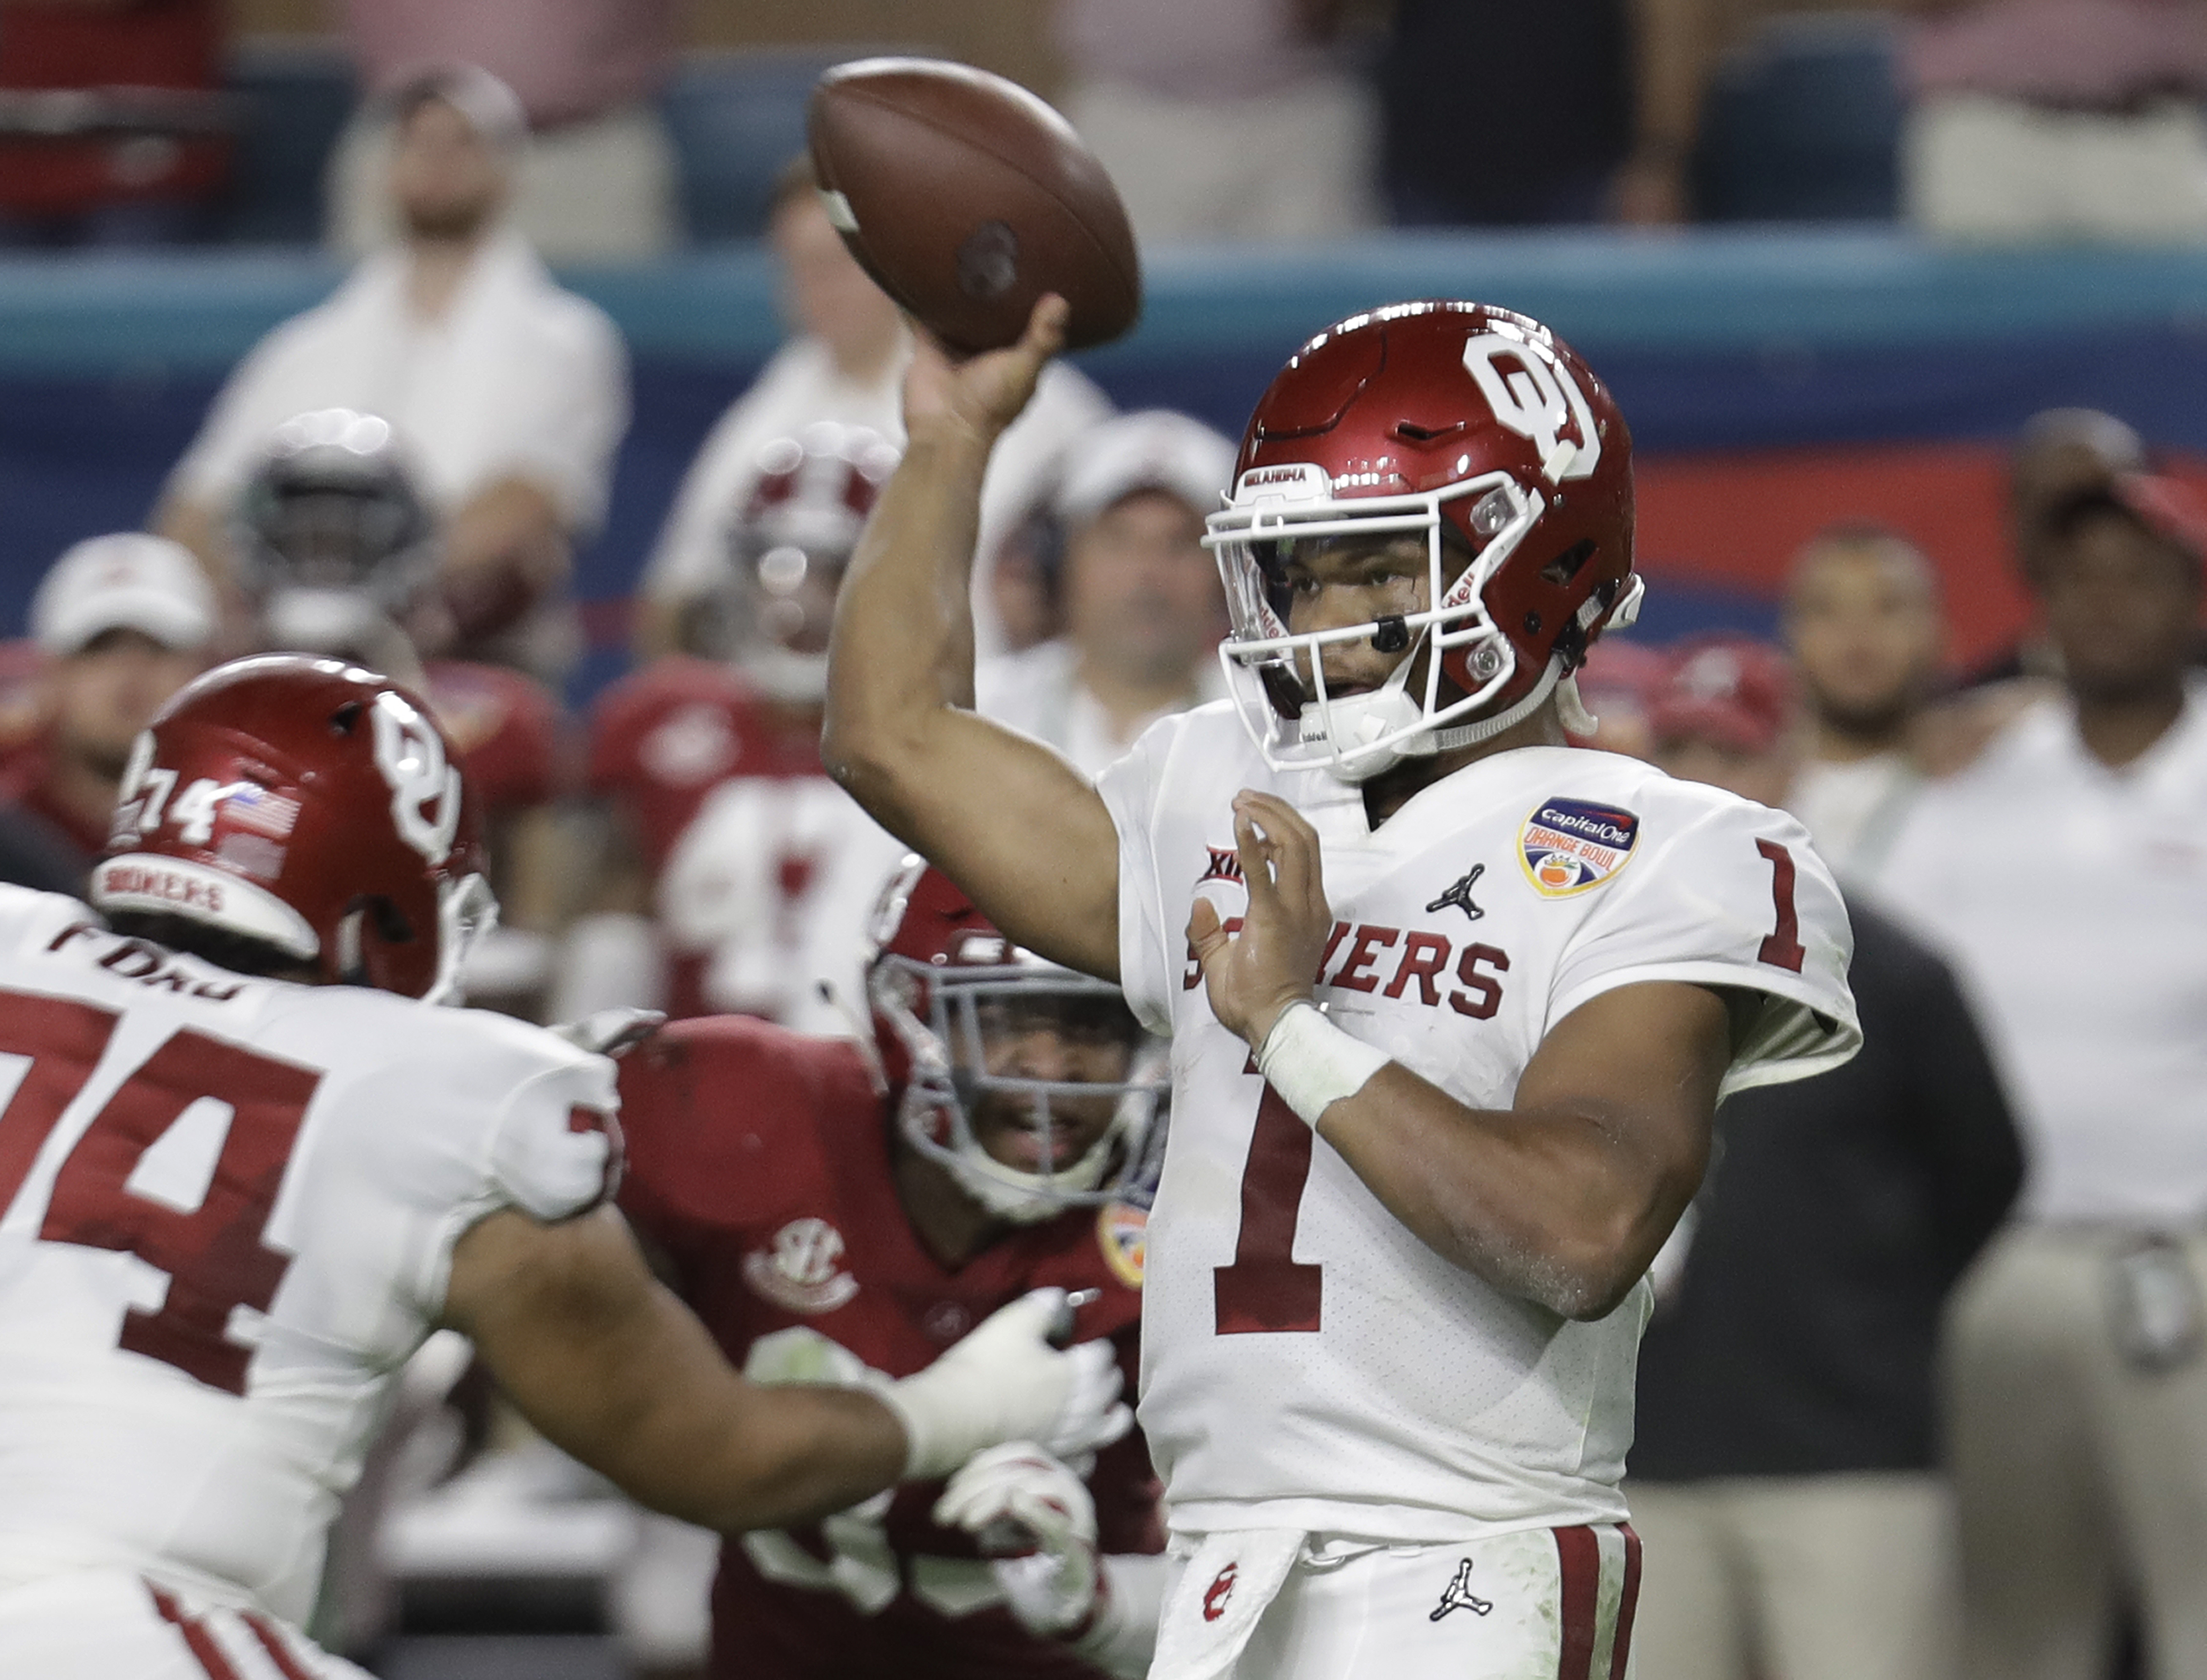 Oklahoma quarterback Kyler Murray (1) looks to pass, during the first half of the Orange Bowl NCAA college football game against Alabama, Saturday, Dec. 29, 2018, in Miami Gardens, Fla. (AP Photo/Lynne Sladky)